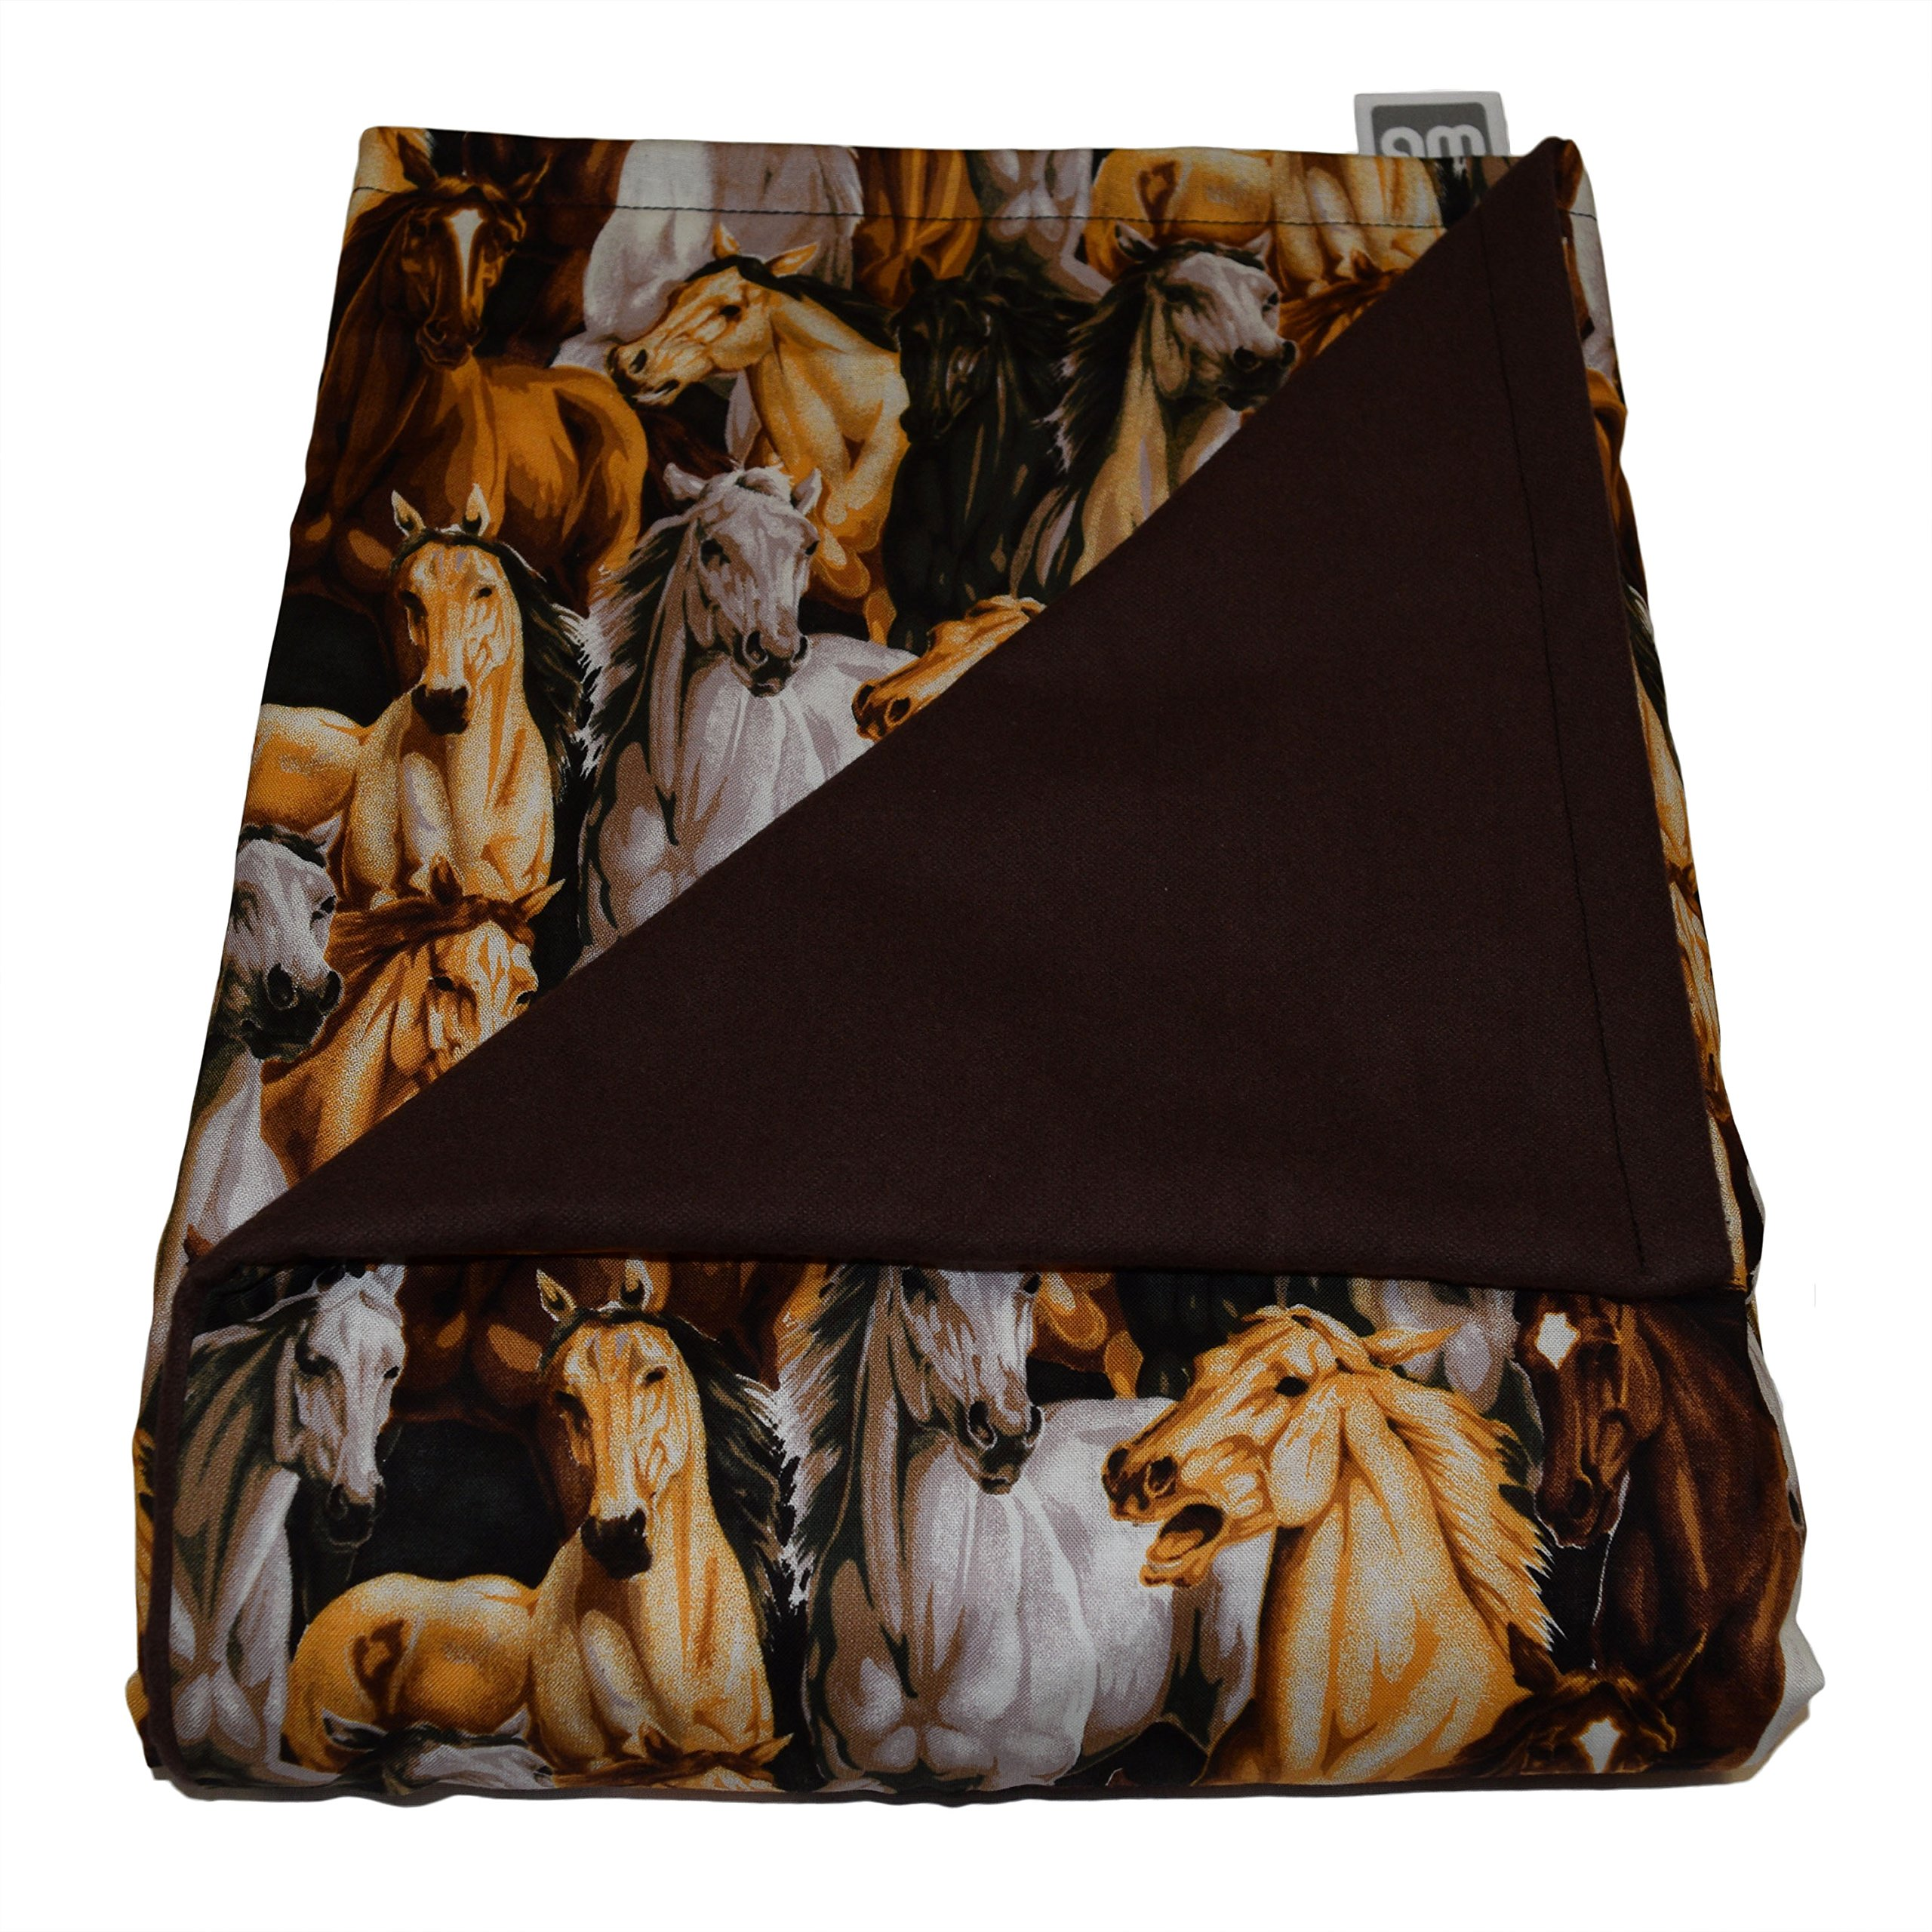 WEIGHTED BLANKETS PLUS LLC - MADE IN AMERICA - CHILD DELUXE SMALL WEIGHTED BLANKET - HORSES - COTTON/FLANNEL (52'' L x 40'' W) 5lb MEDIUM PRESSURE.